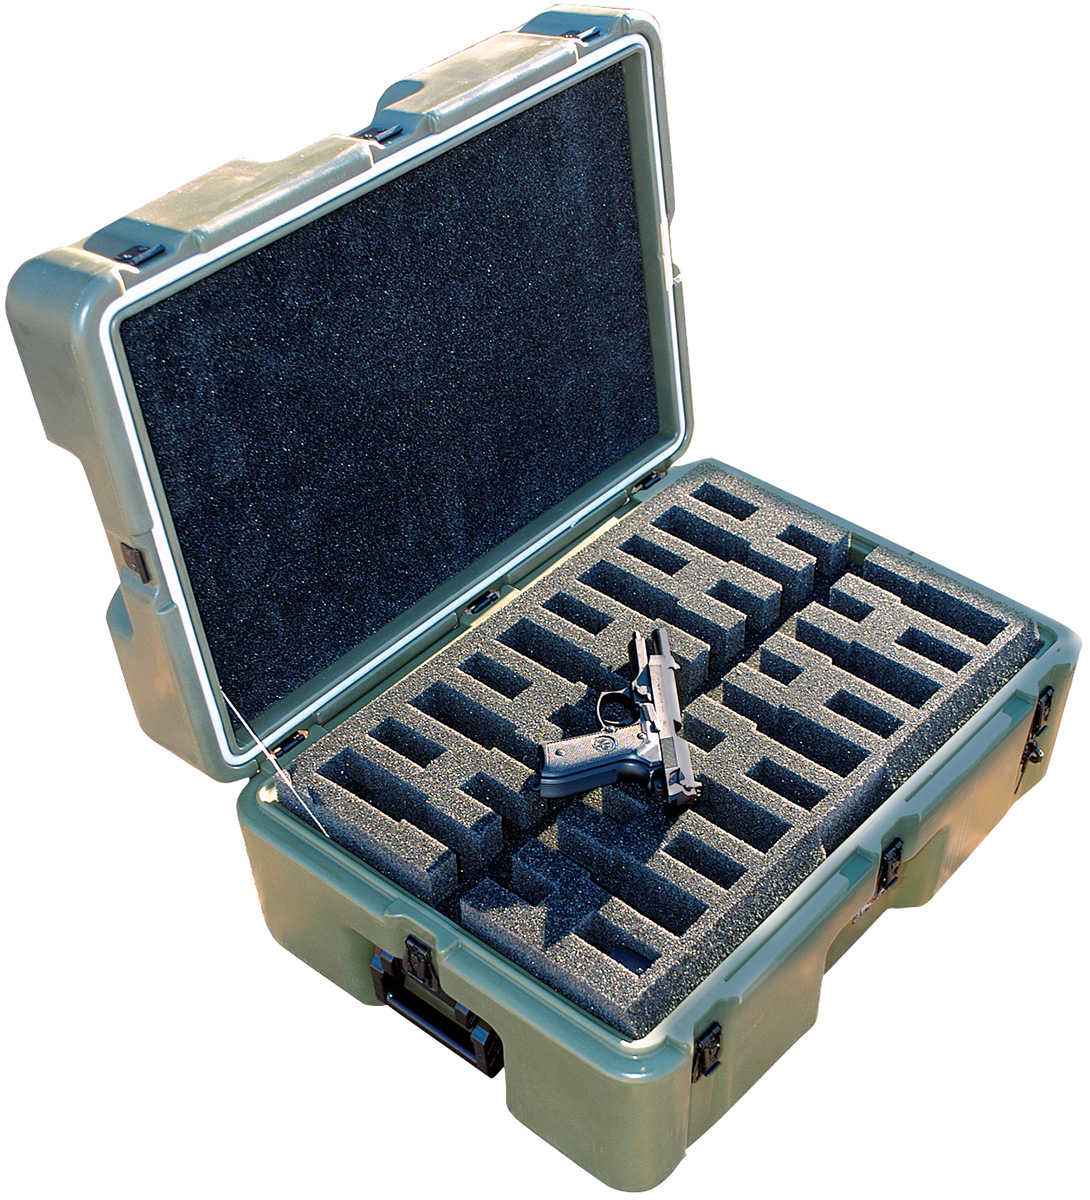 pelican 472 m9 10 military m9 pistol transport case